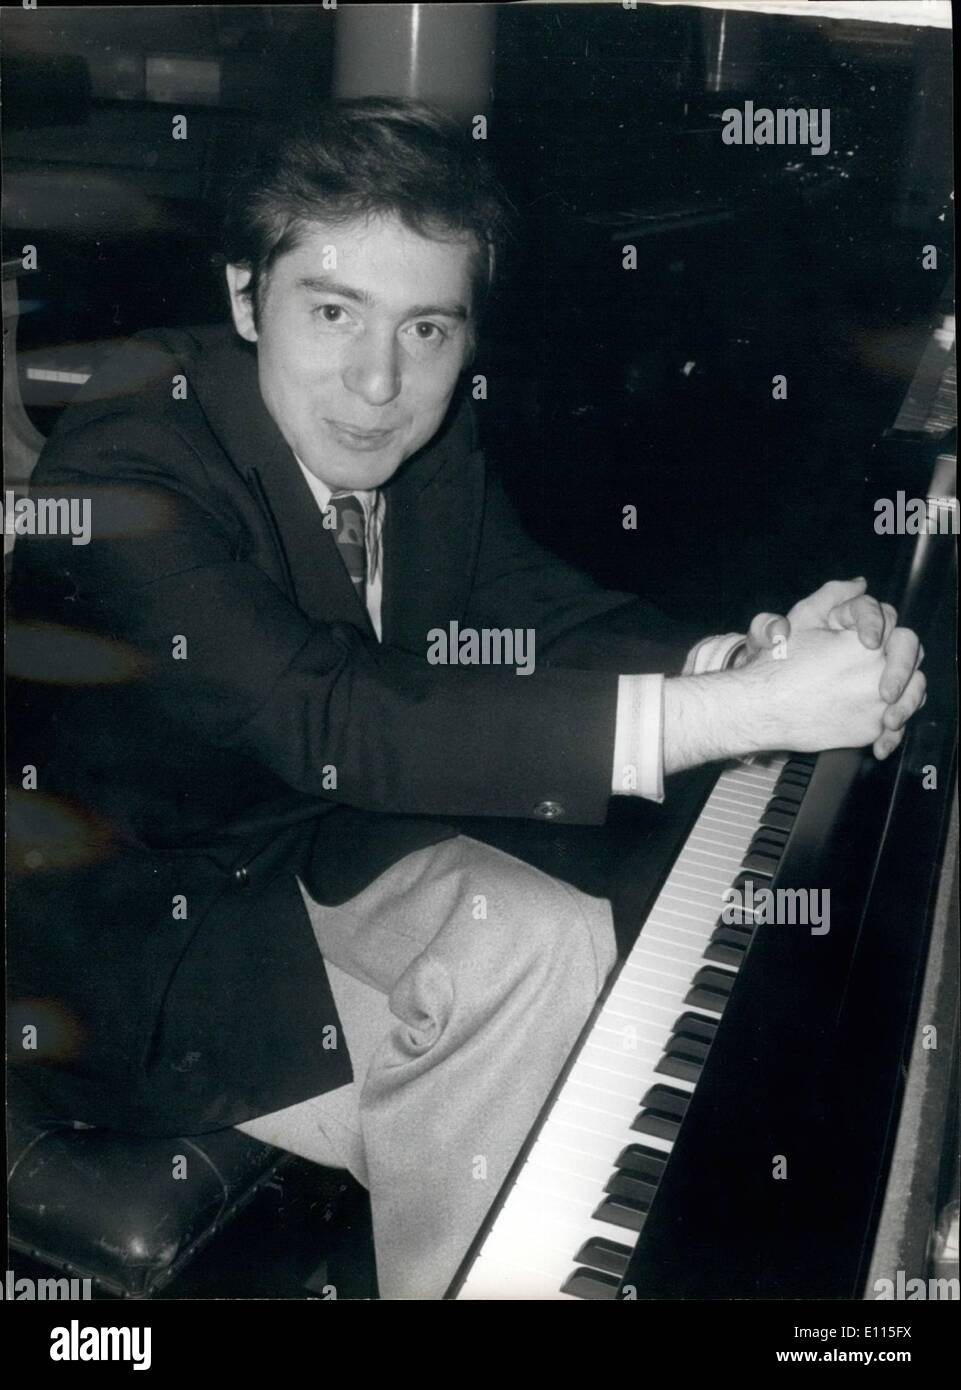 Sep  09, 1975 - LEEDS PRIZE-WINNING RUSSIAN PIANIST TO GIVE